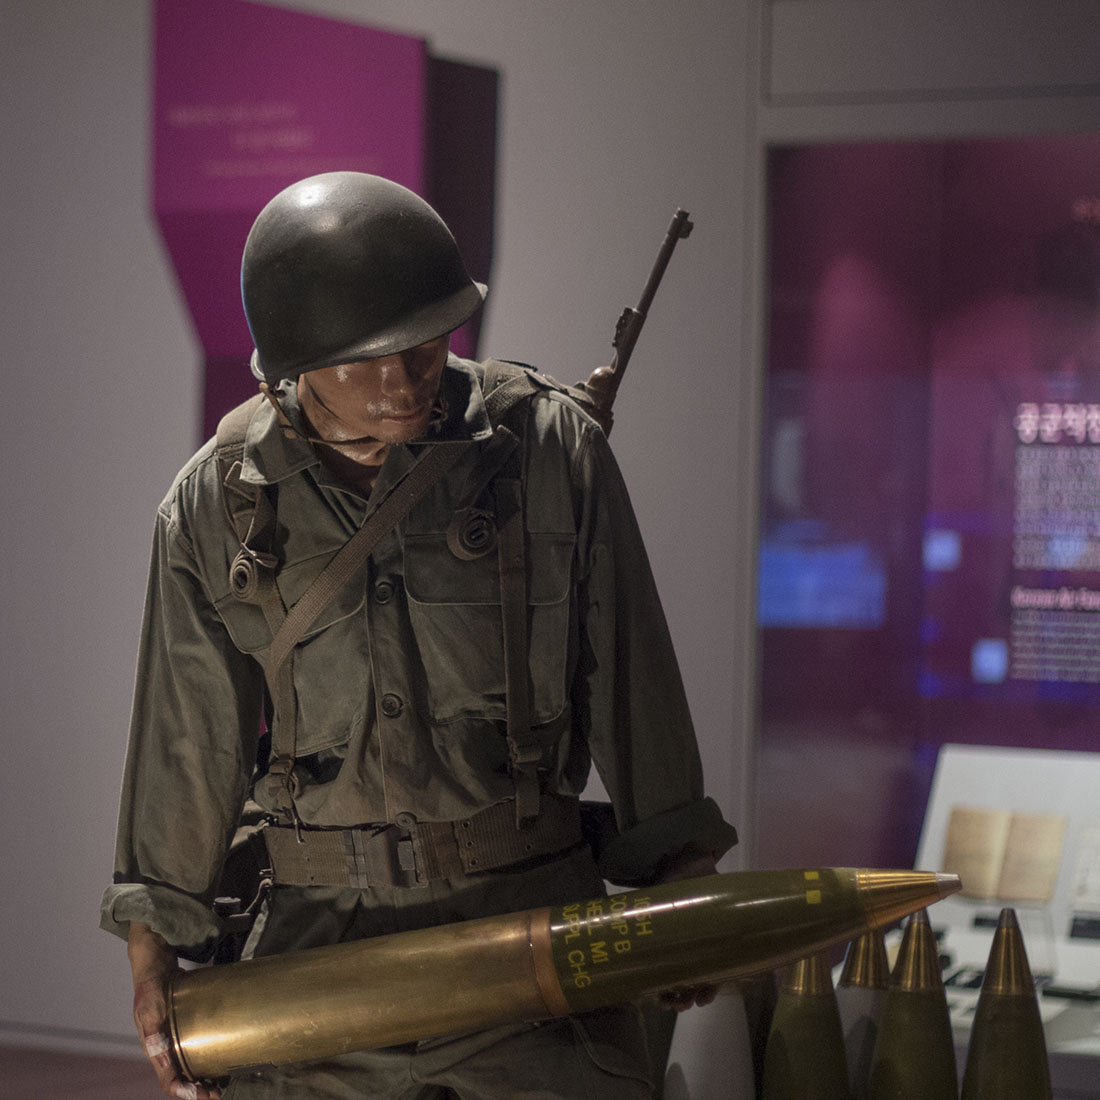 Korean fighter, shell, combat, military uniform, Museum, Seoul